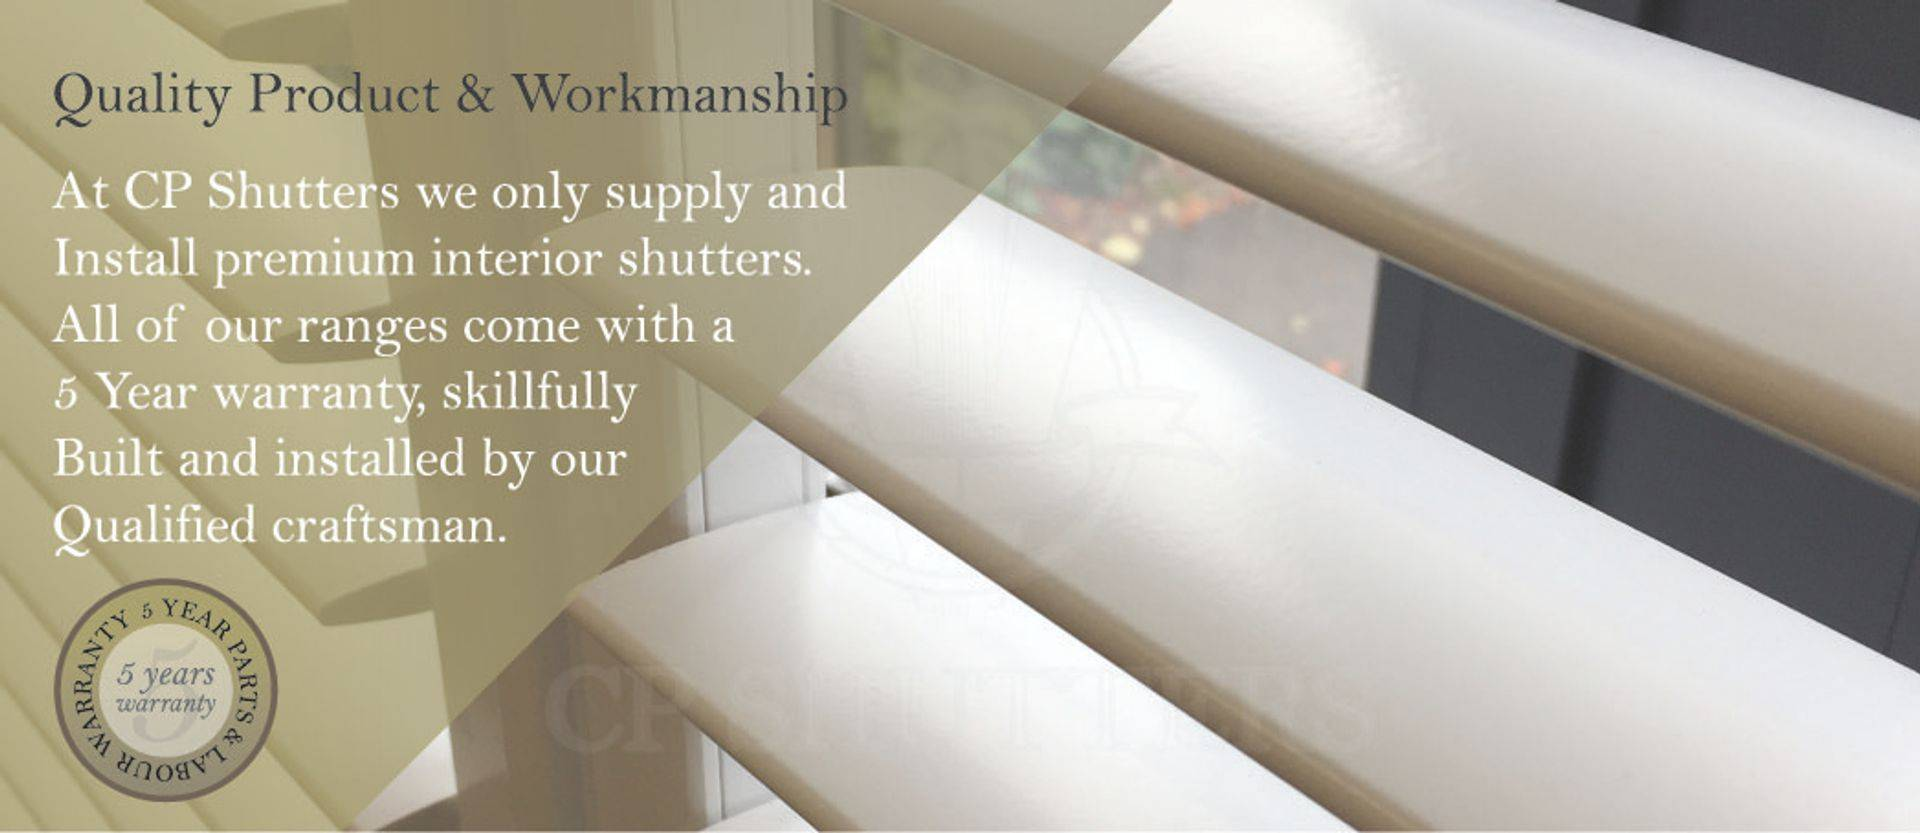 At CP Shutters, we are proud to have a completely in-house team, our Shutters are designed and installed by our own shutter experts, no sub contractors.